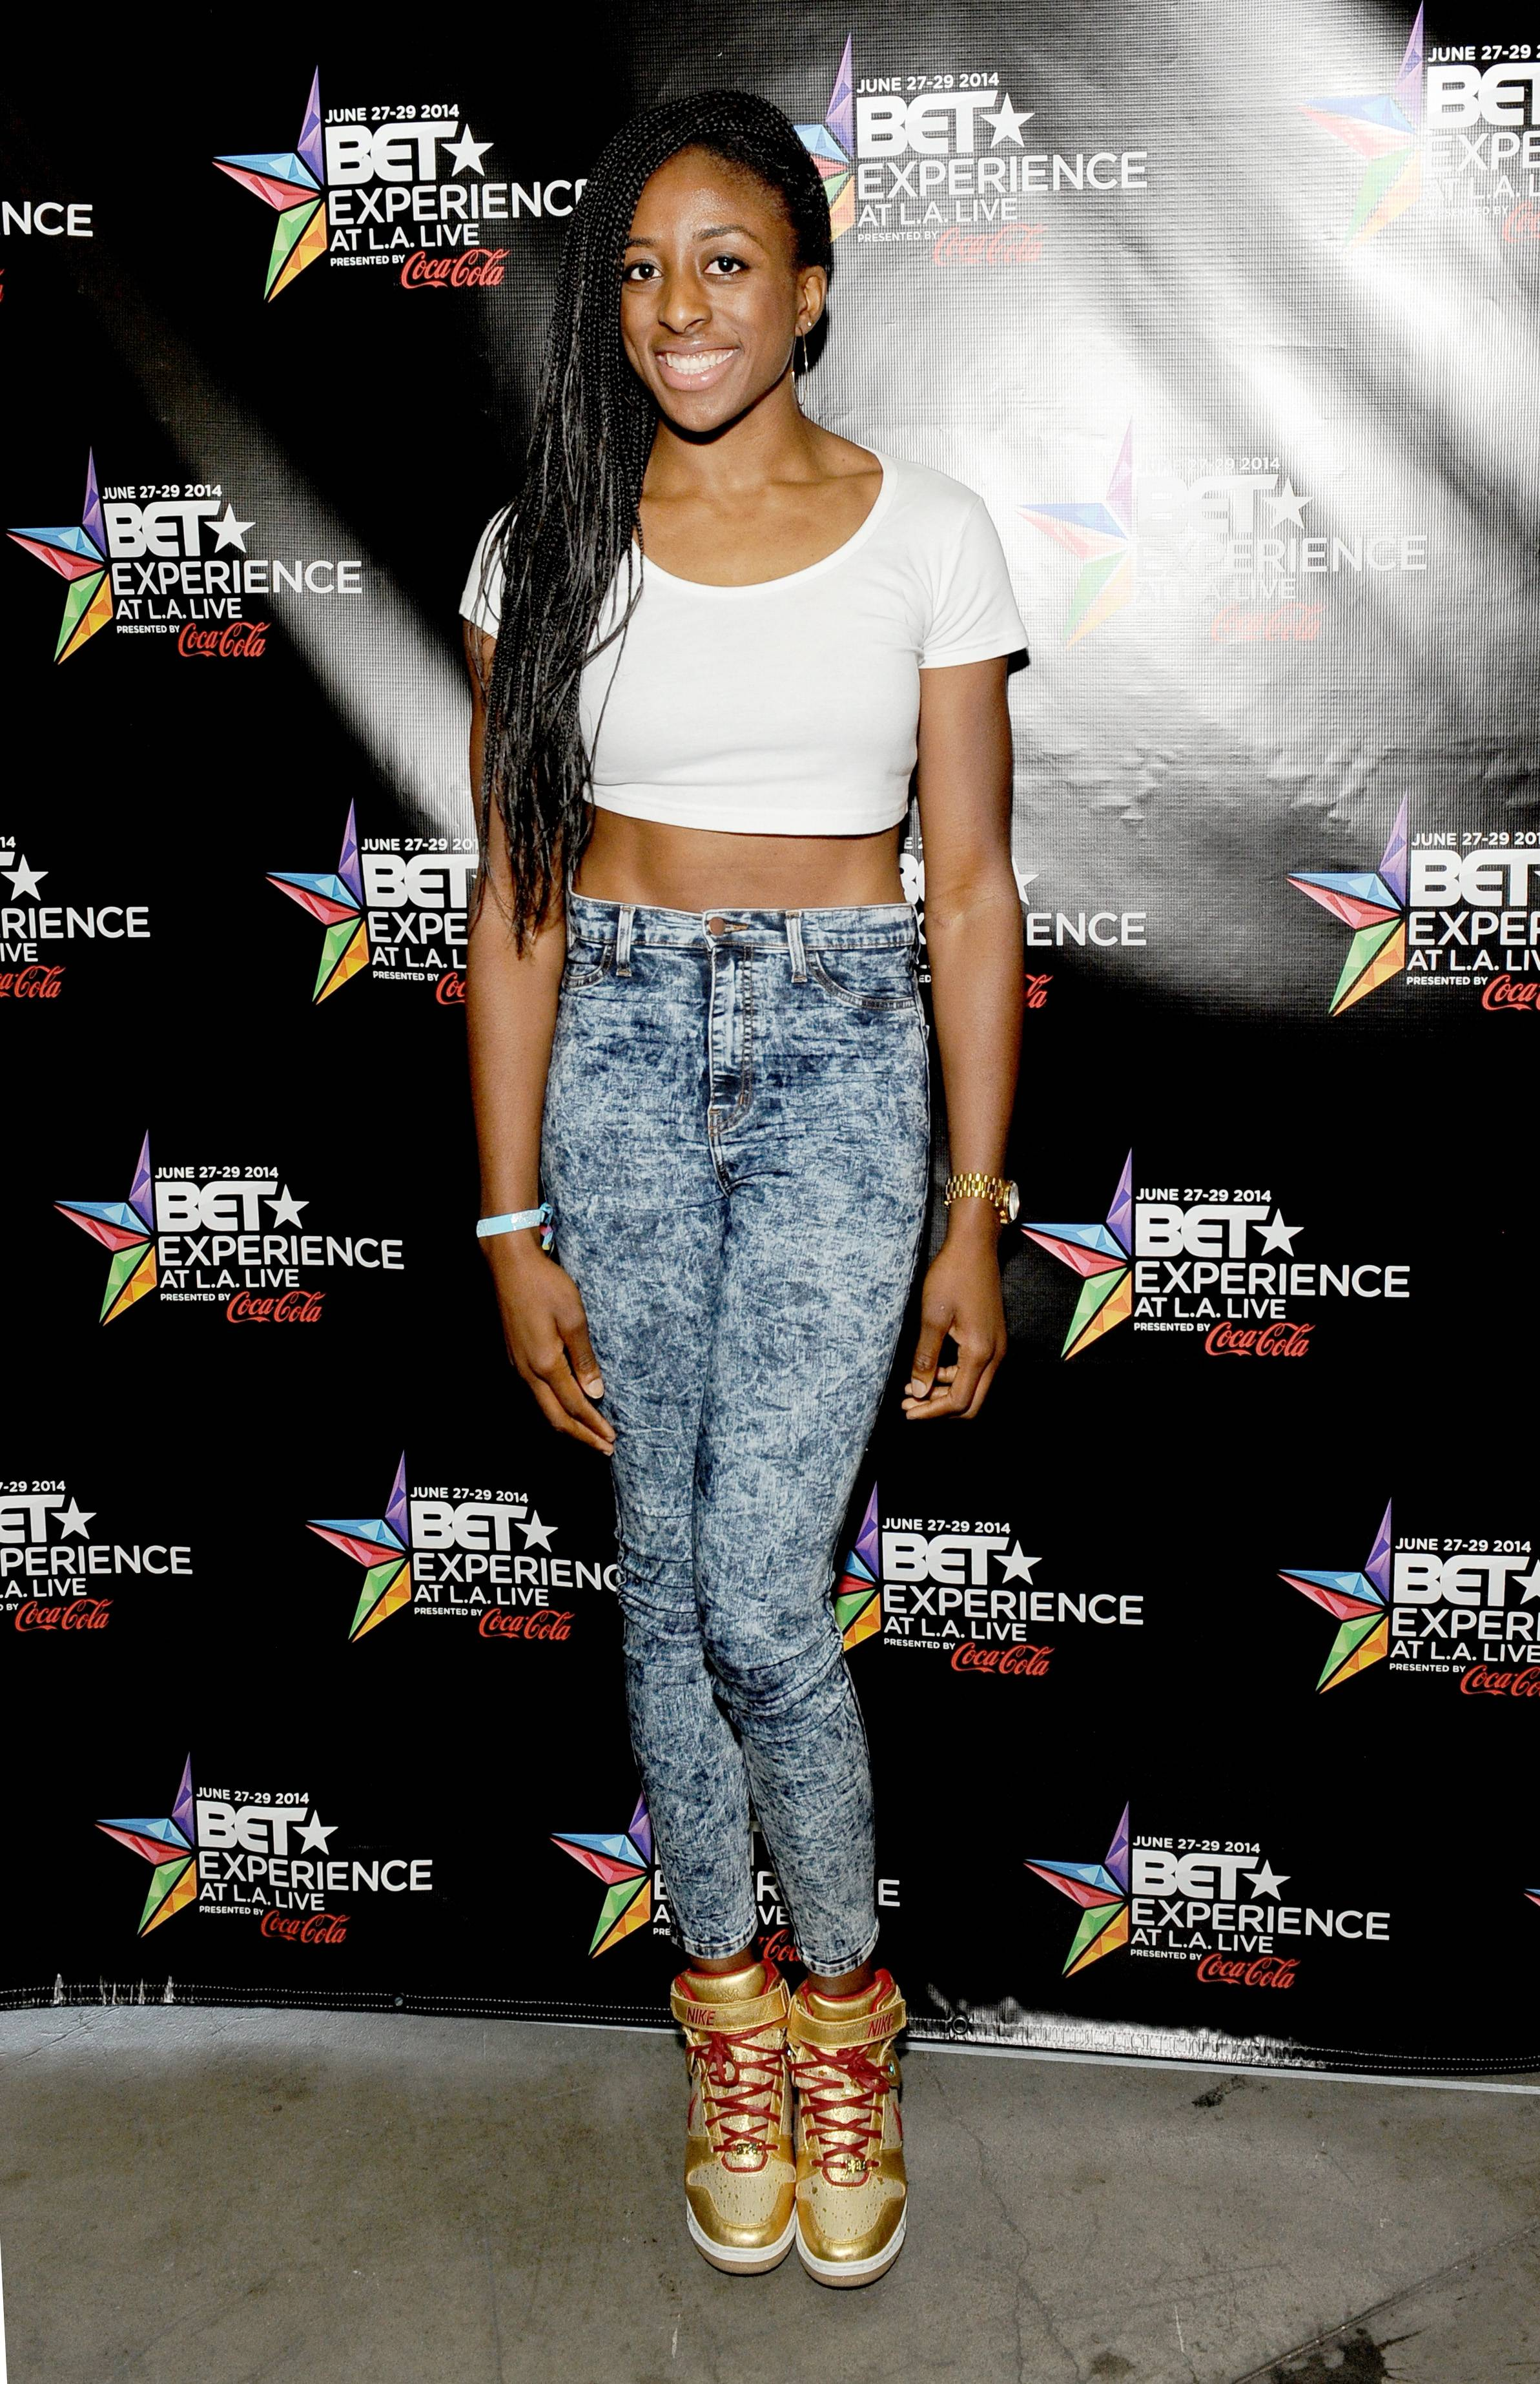 attends day 2 of a gifting suite during the 2014 BET Experience at L.A. LIVE on June 29, 2014 in Los Angeles, California.